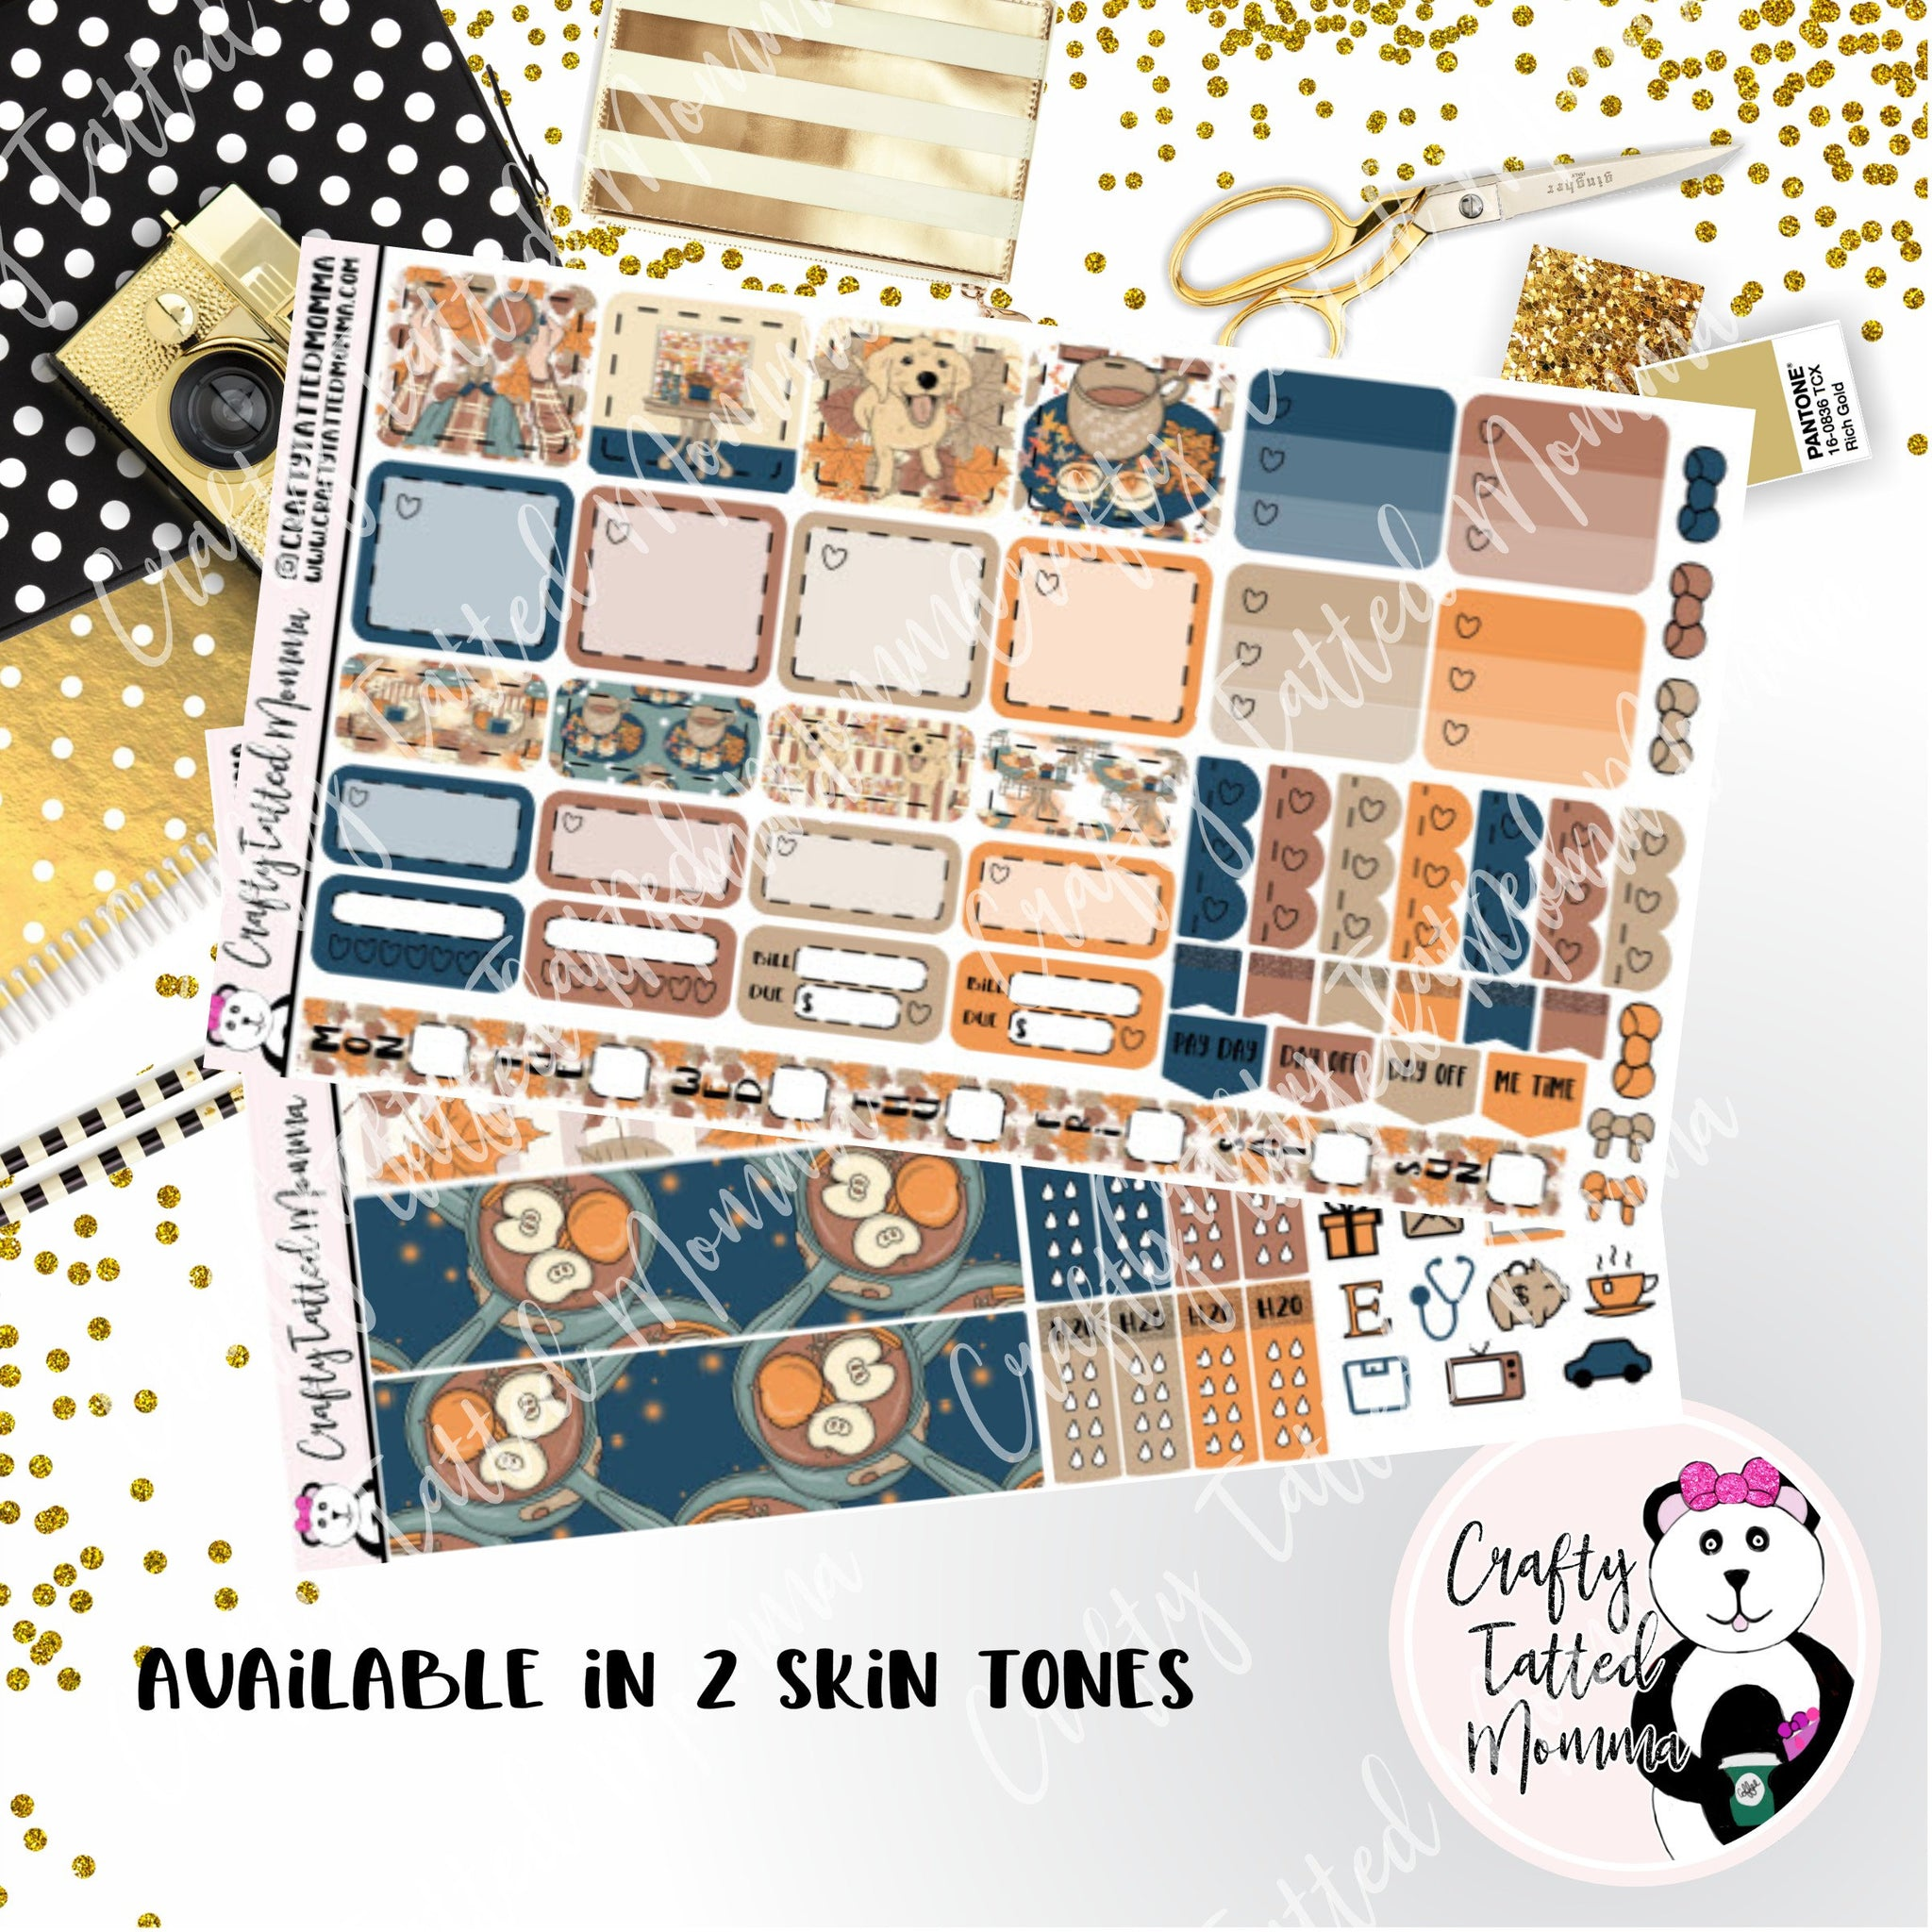 Cozy Home Deluxe Hobonichi Weeks Sticker Kit   Weekly Sticker Kit   Hobonichi Weeks   Planner Stickers   Mini Stickers   Functional Sticker